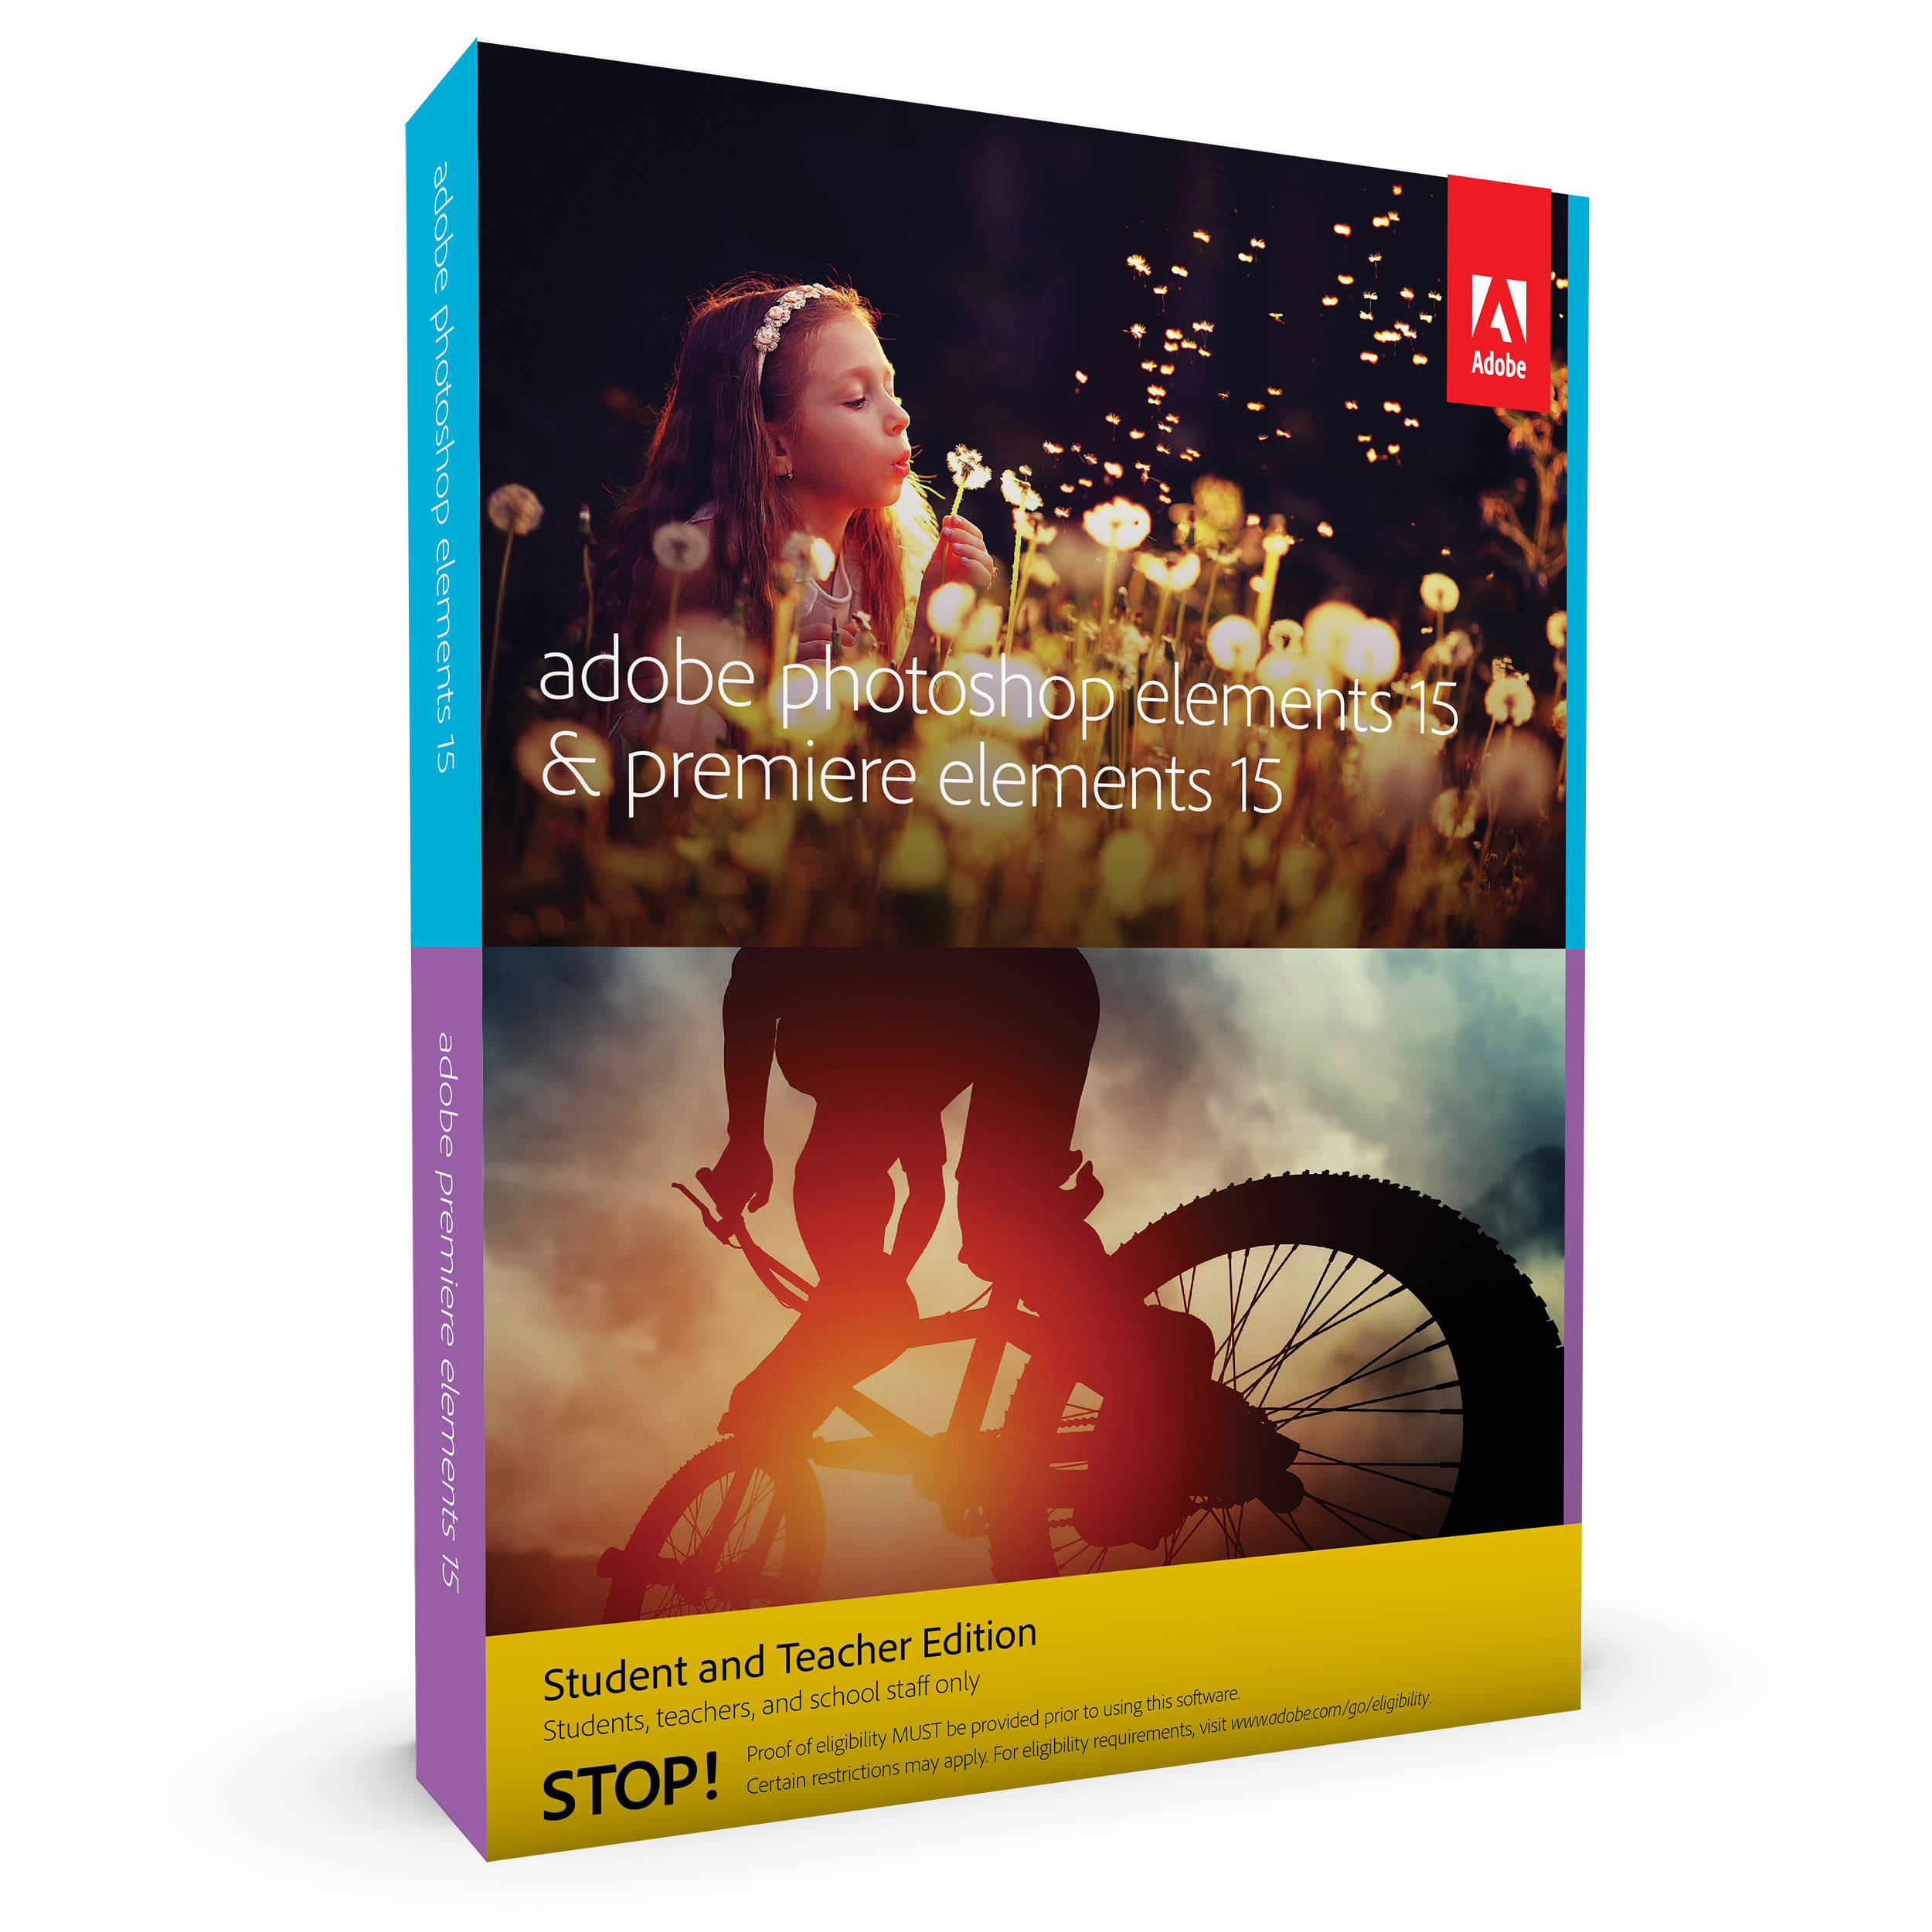 How to fix color cast in photoshop elements - Adobe Photoshop Elements 15 And Premiere Elements 15 Dvd Student Teacher Edition